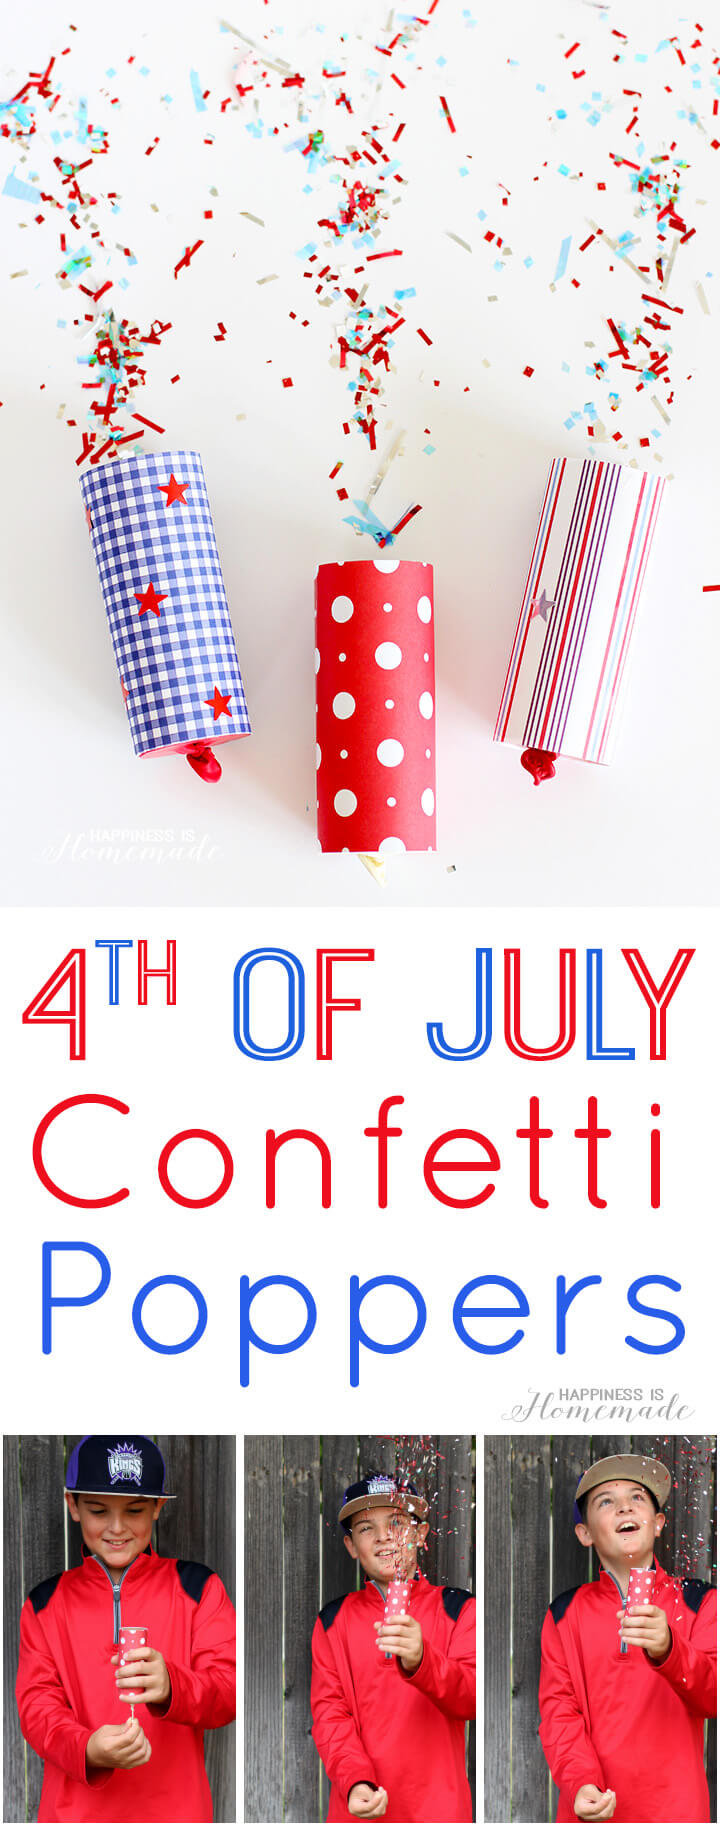 DIY Confetti Poppers for 4th of July - Happiness is Homemade